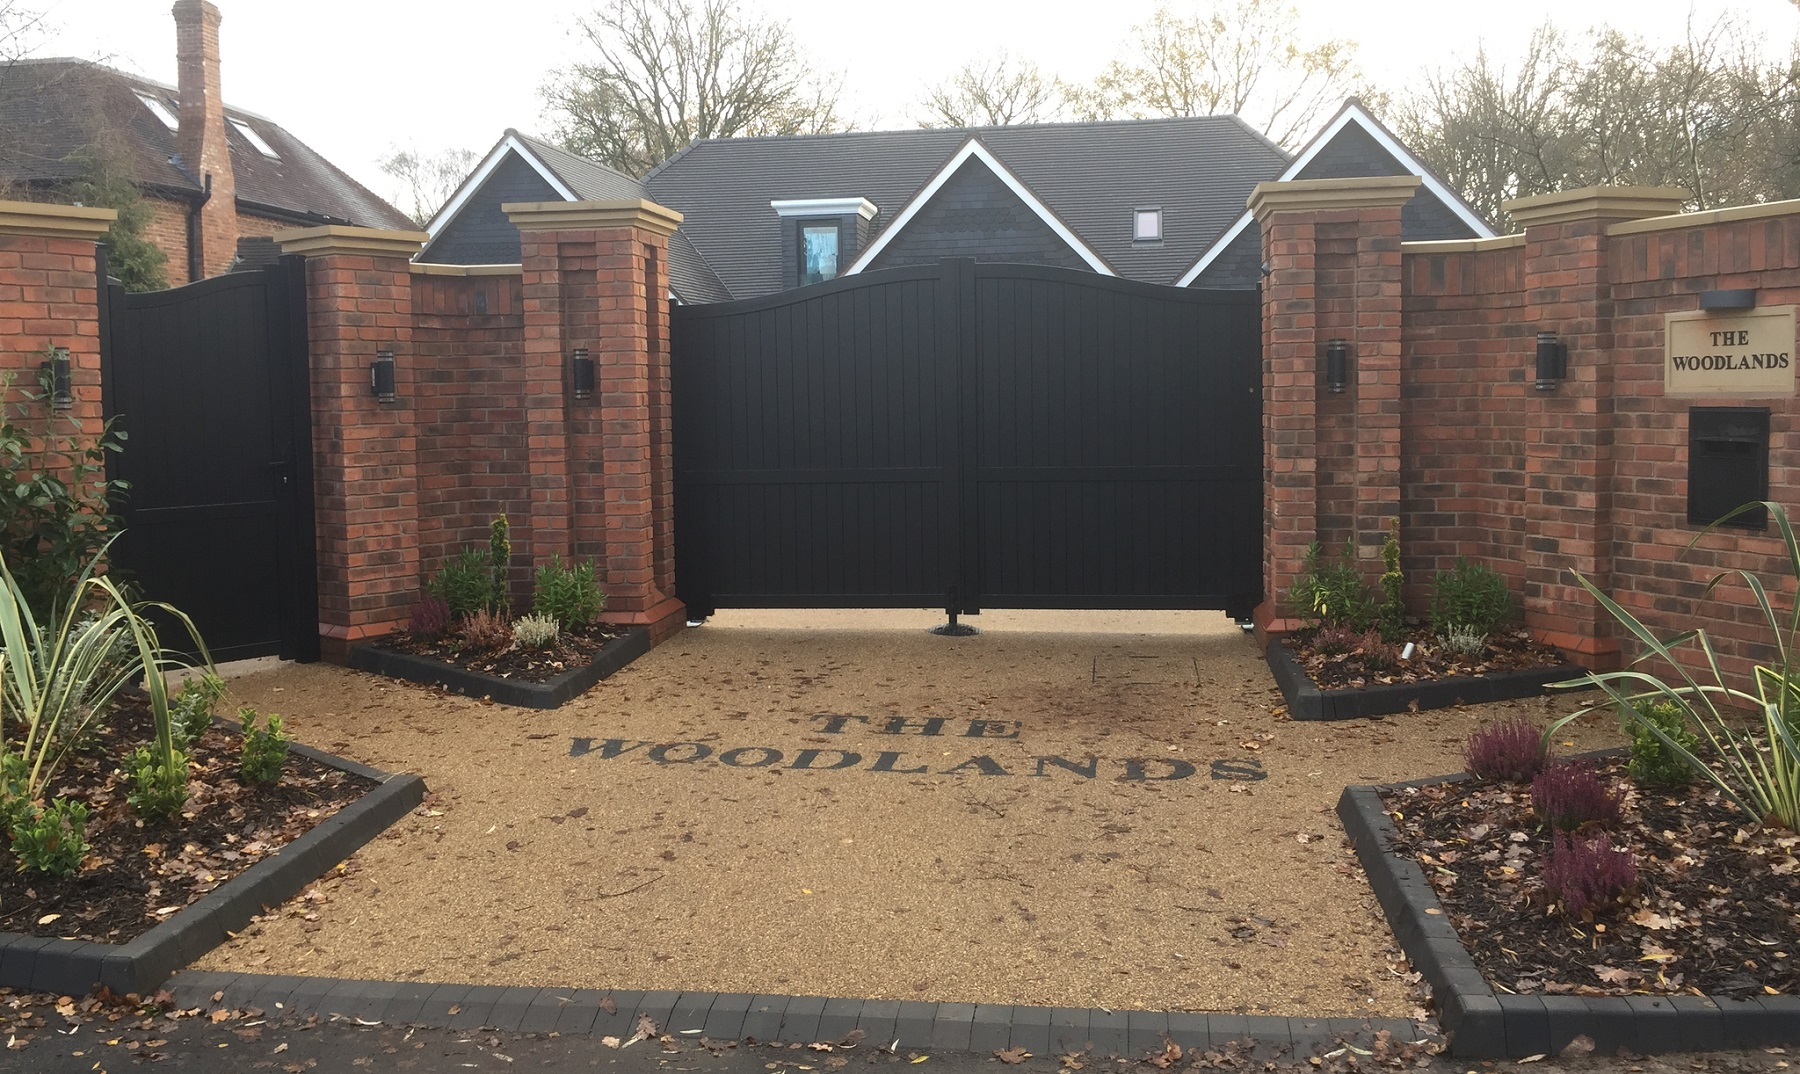 Aluminium gates fitted to large driveway entrance with matching curved pedestrian gate